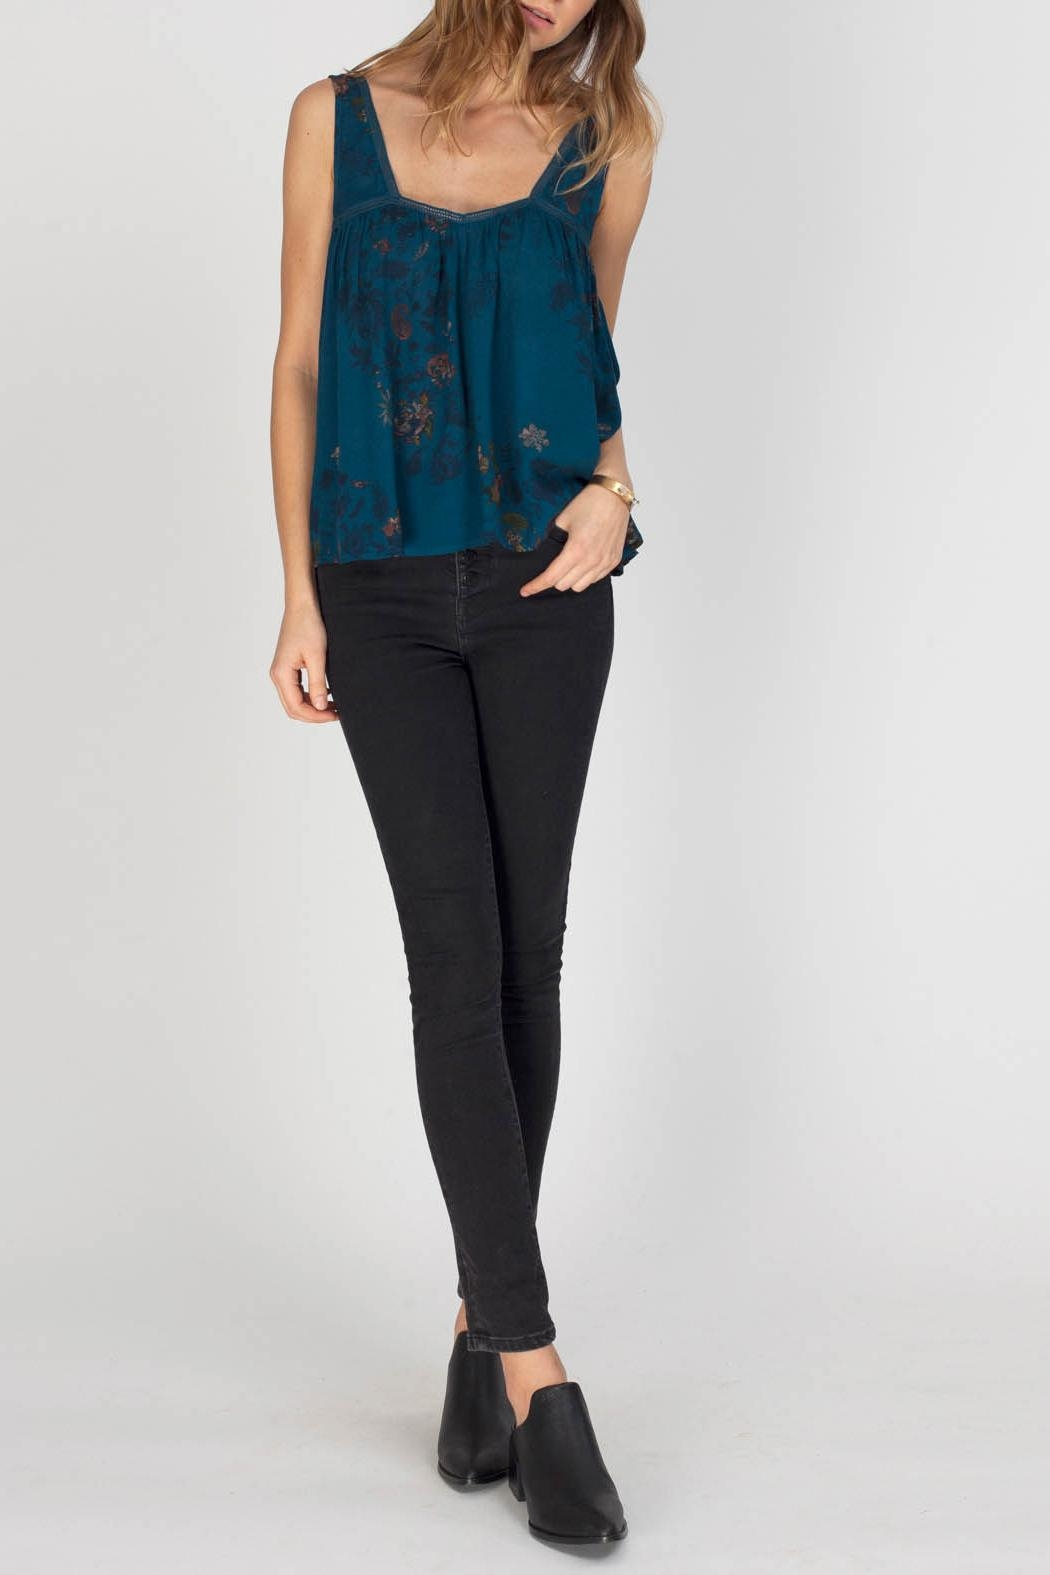 Gentle Fawn Indigo Top - Main Image